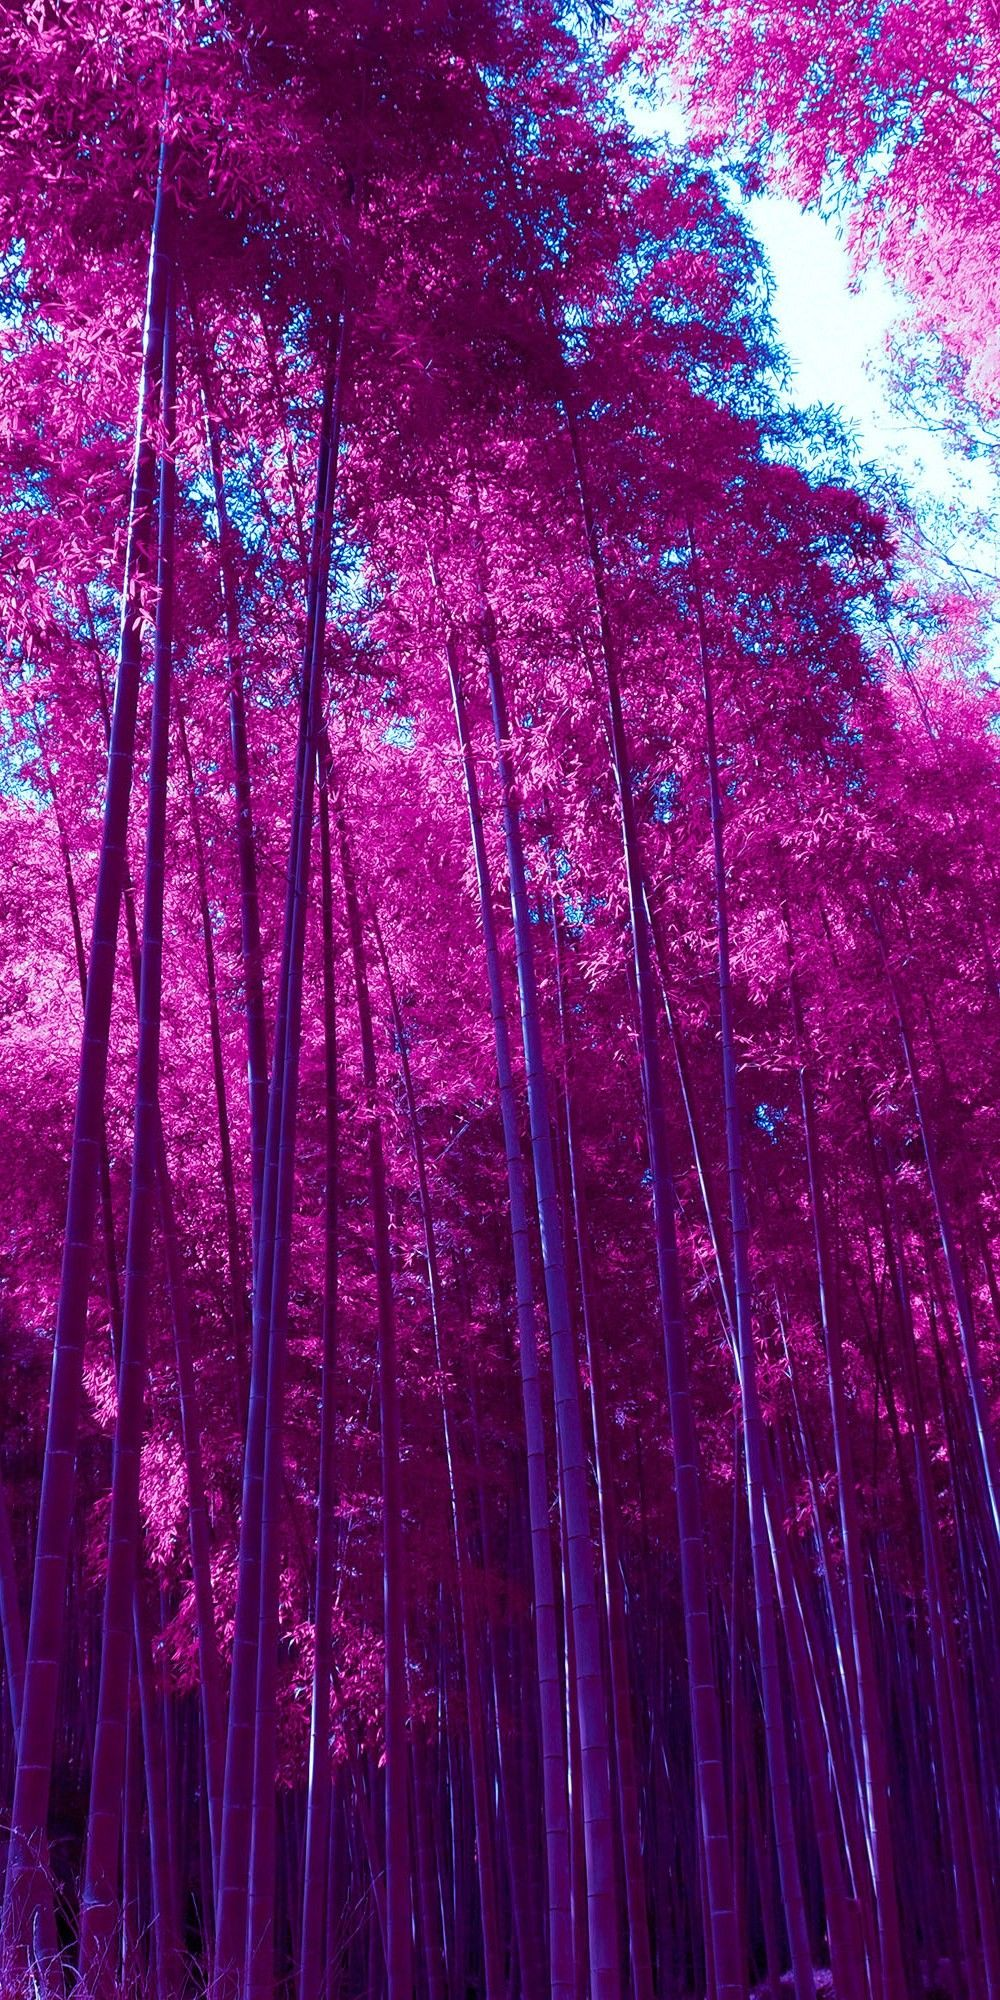 Pin By Iyan Sofyan On Nature Photography Free Halloween Wallpaper Romantic Wallpaper Purple Leaves